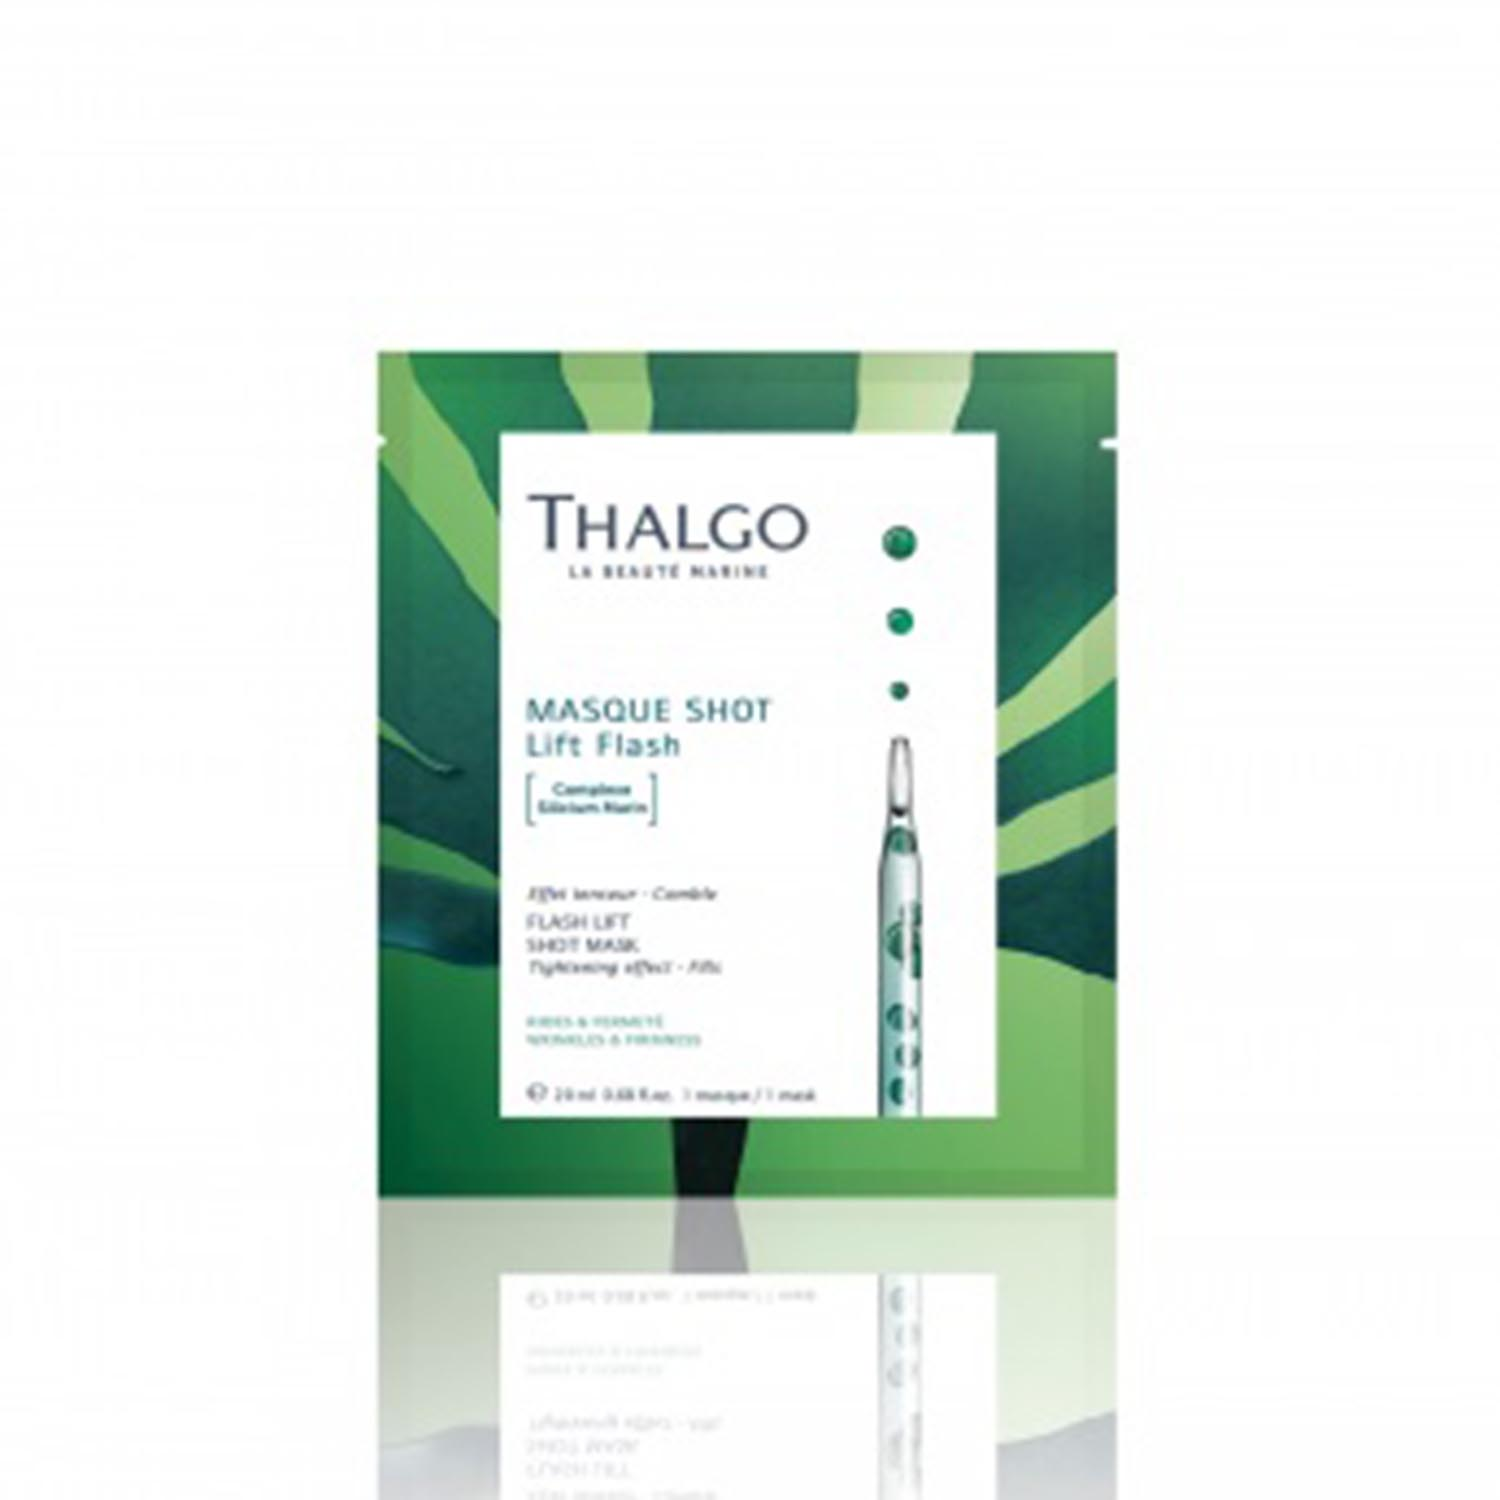 Thalgo cosmetica mascara flash 20ml